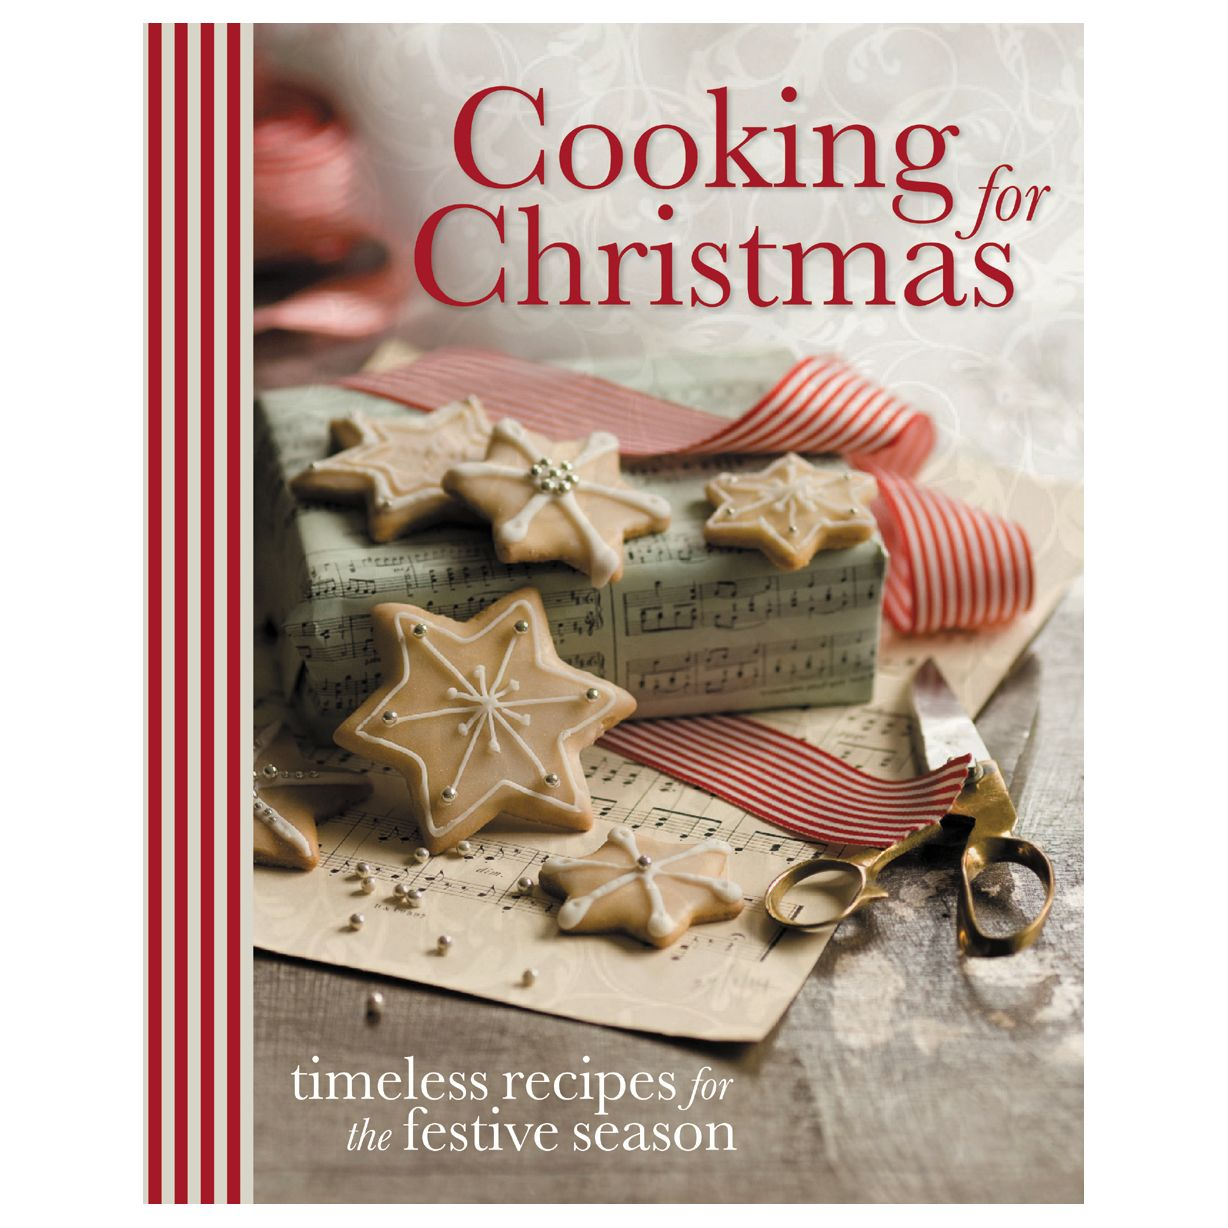 Unbranded Cooking For Christmas Recipe Book